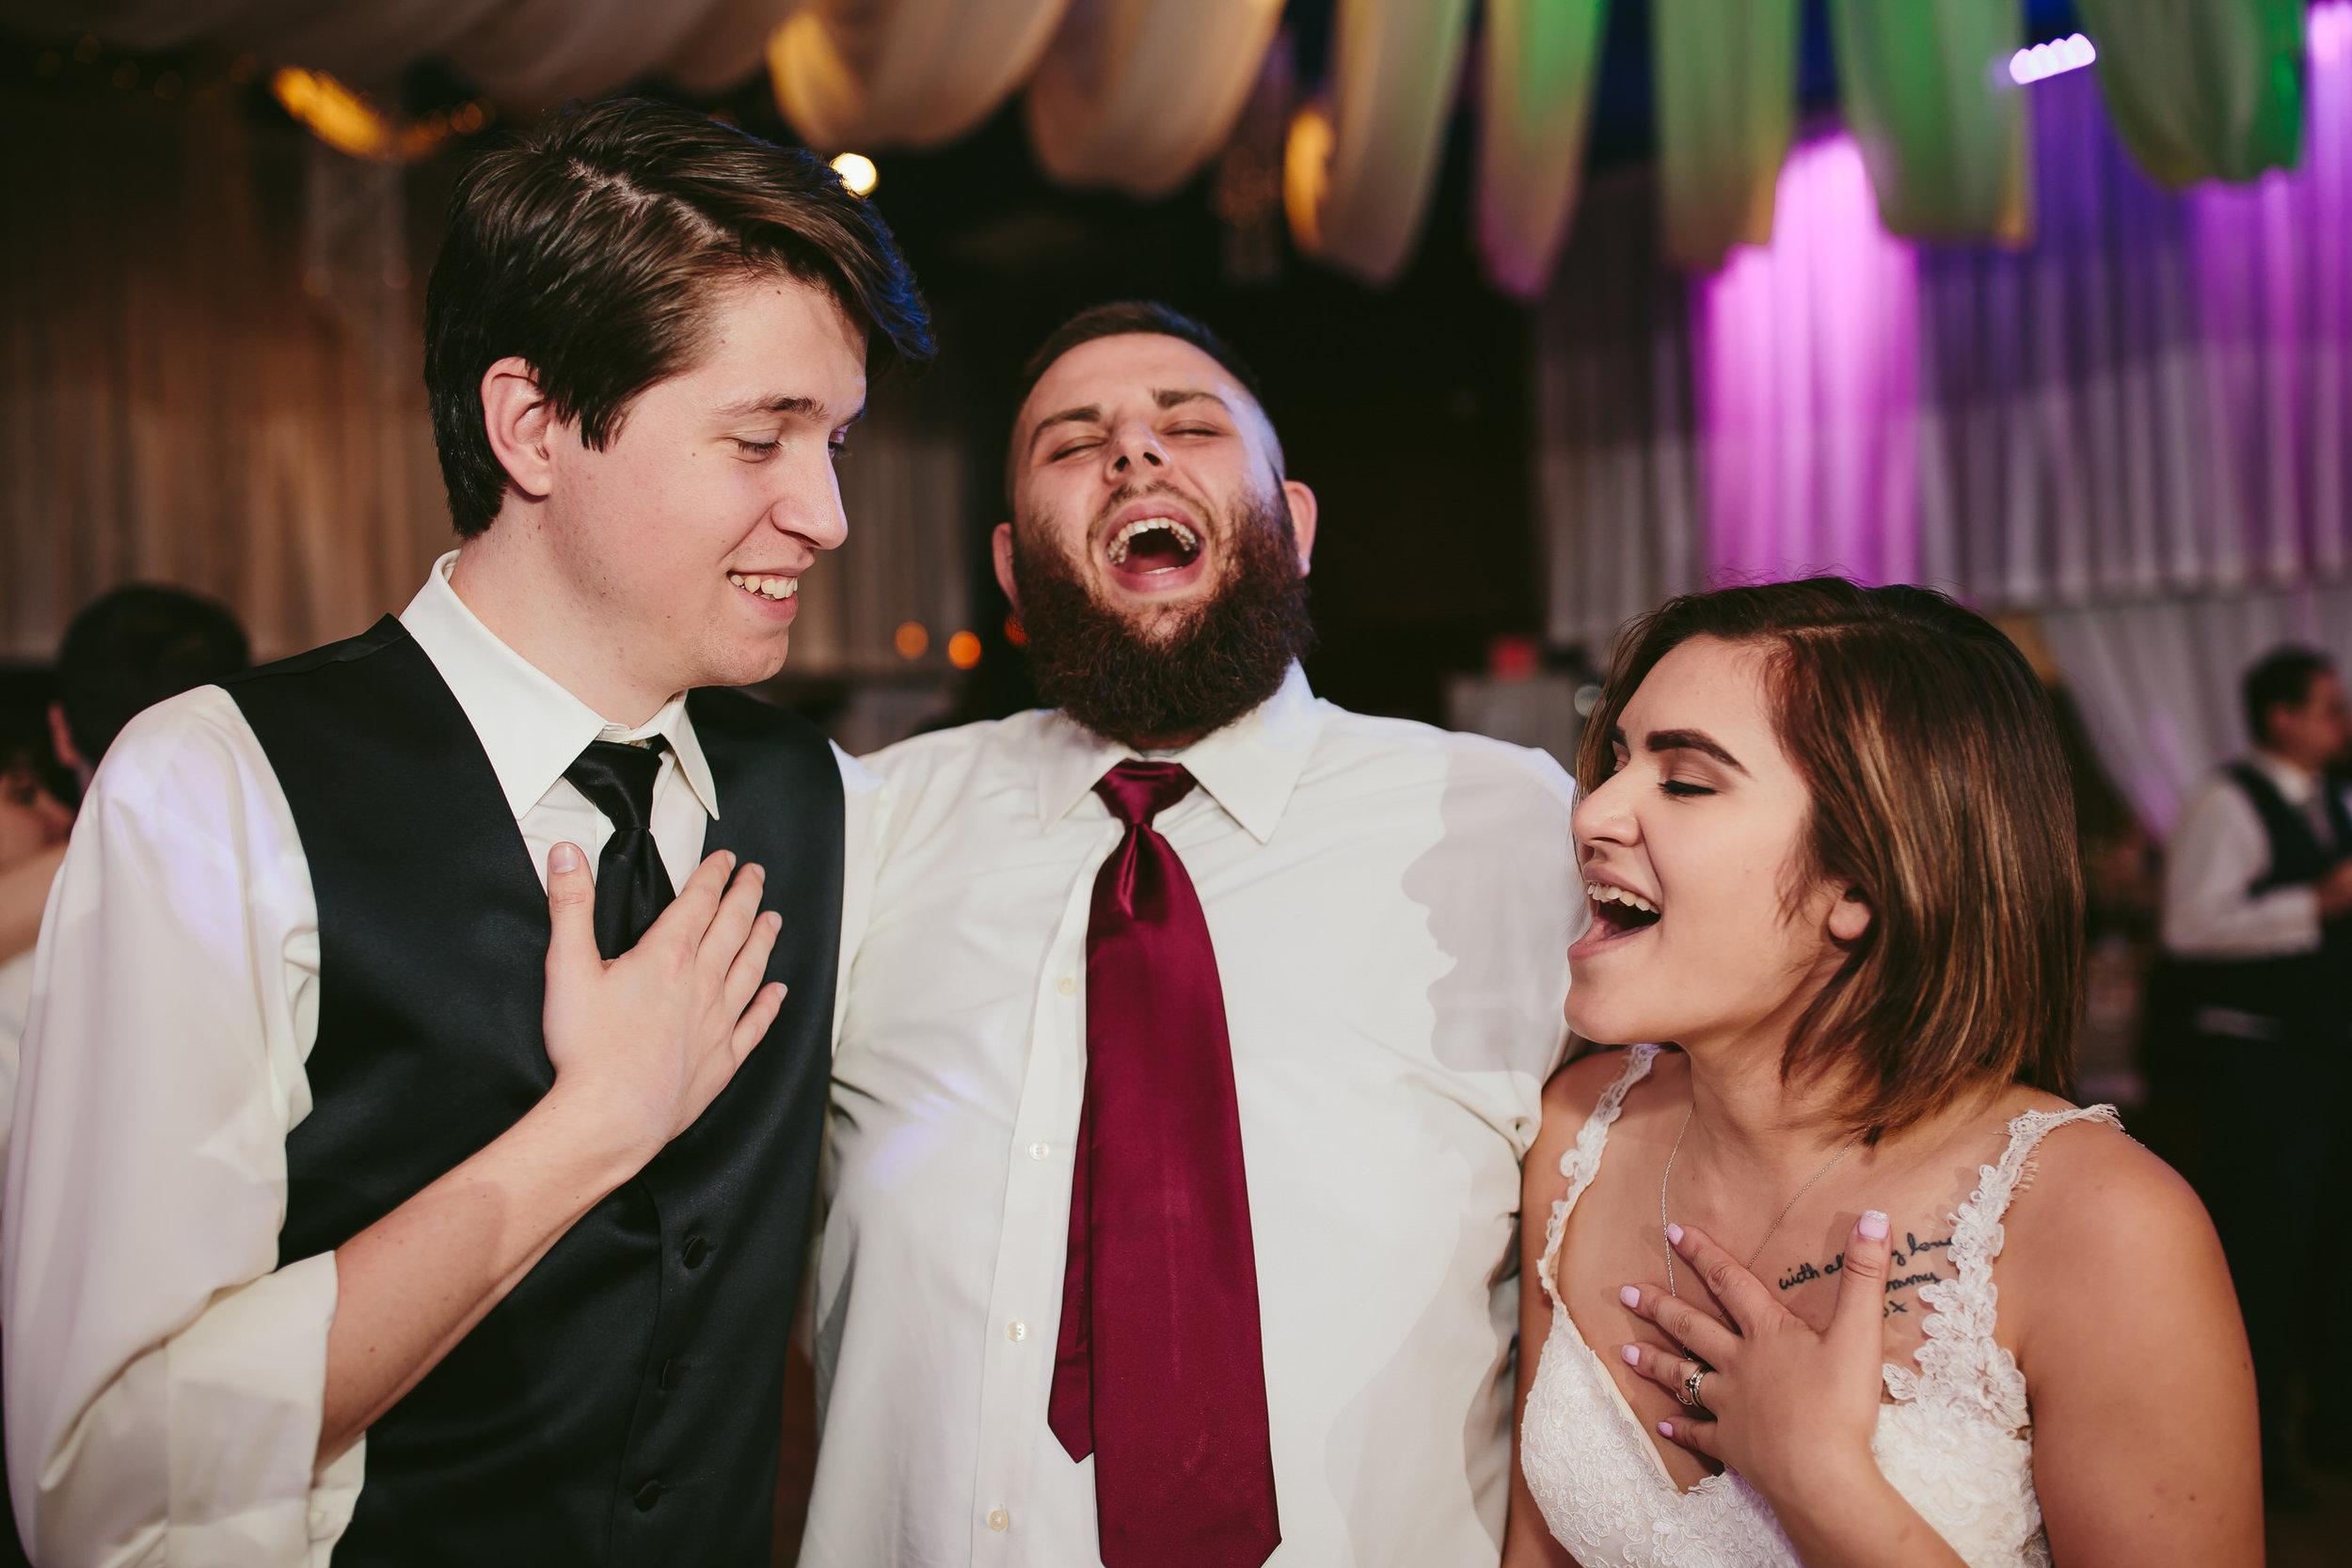 laugh_sing_moments_wedding_photography_tiny_house_photo.jpg